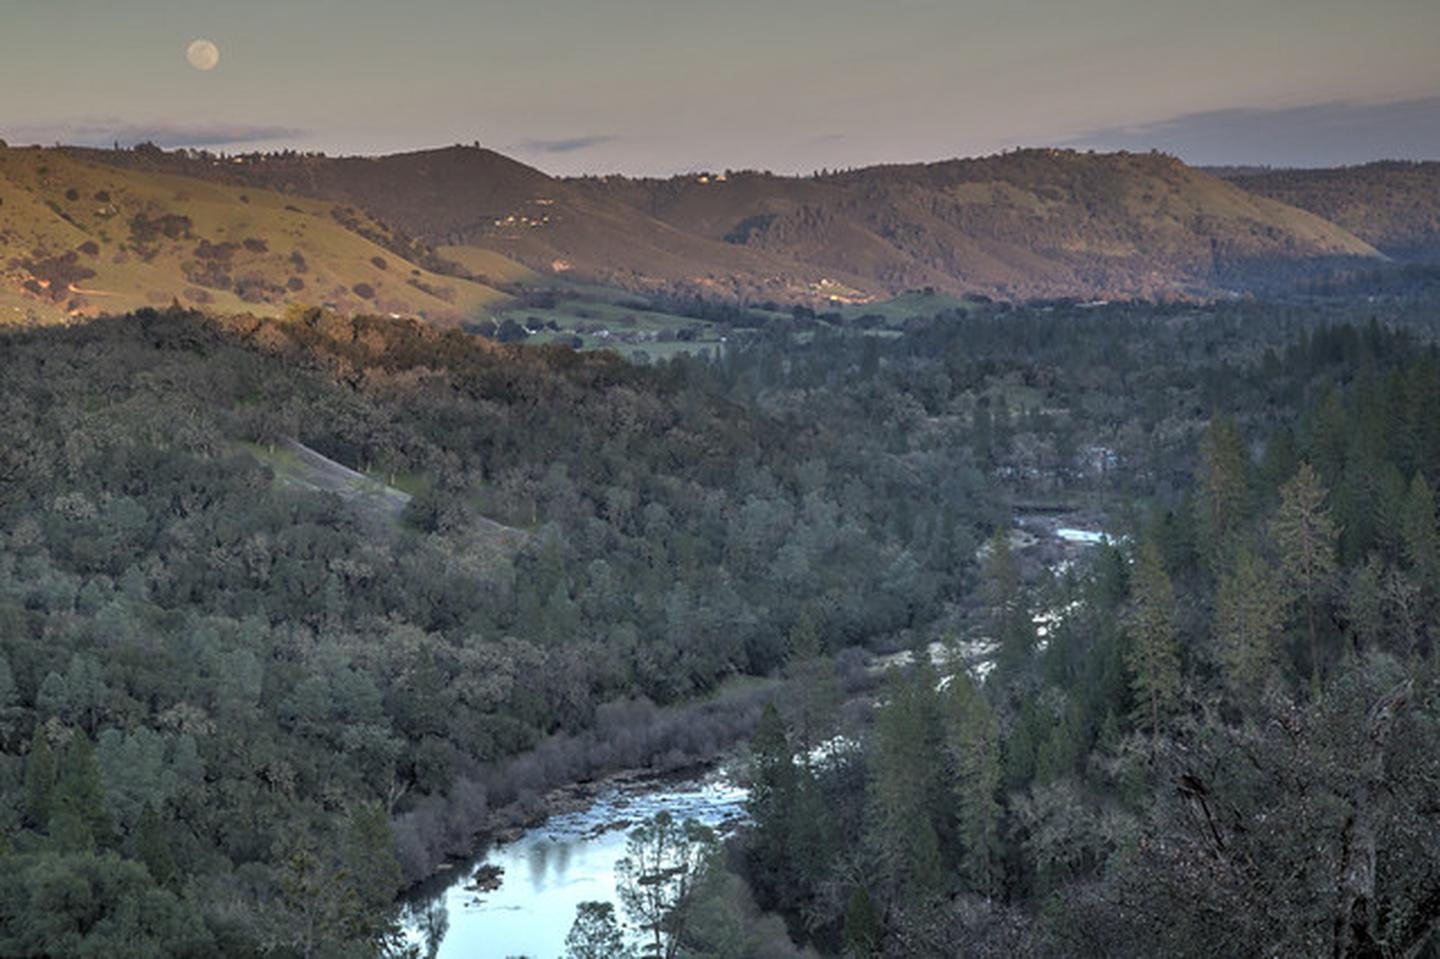 Cronan RanchSouth Fork American River running through Cronan Ranch